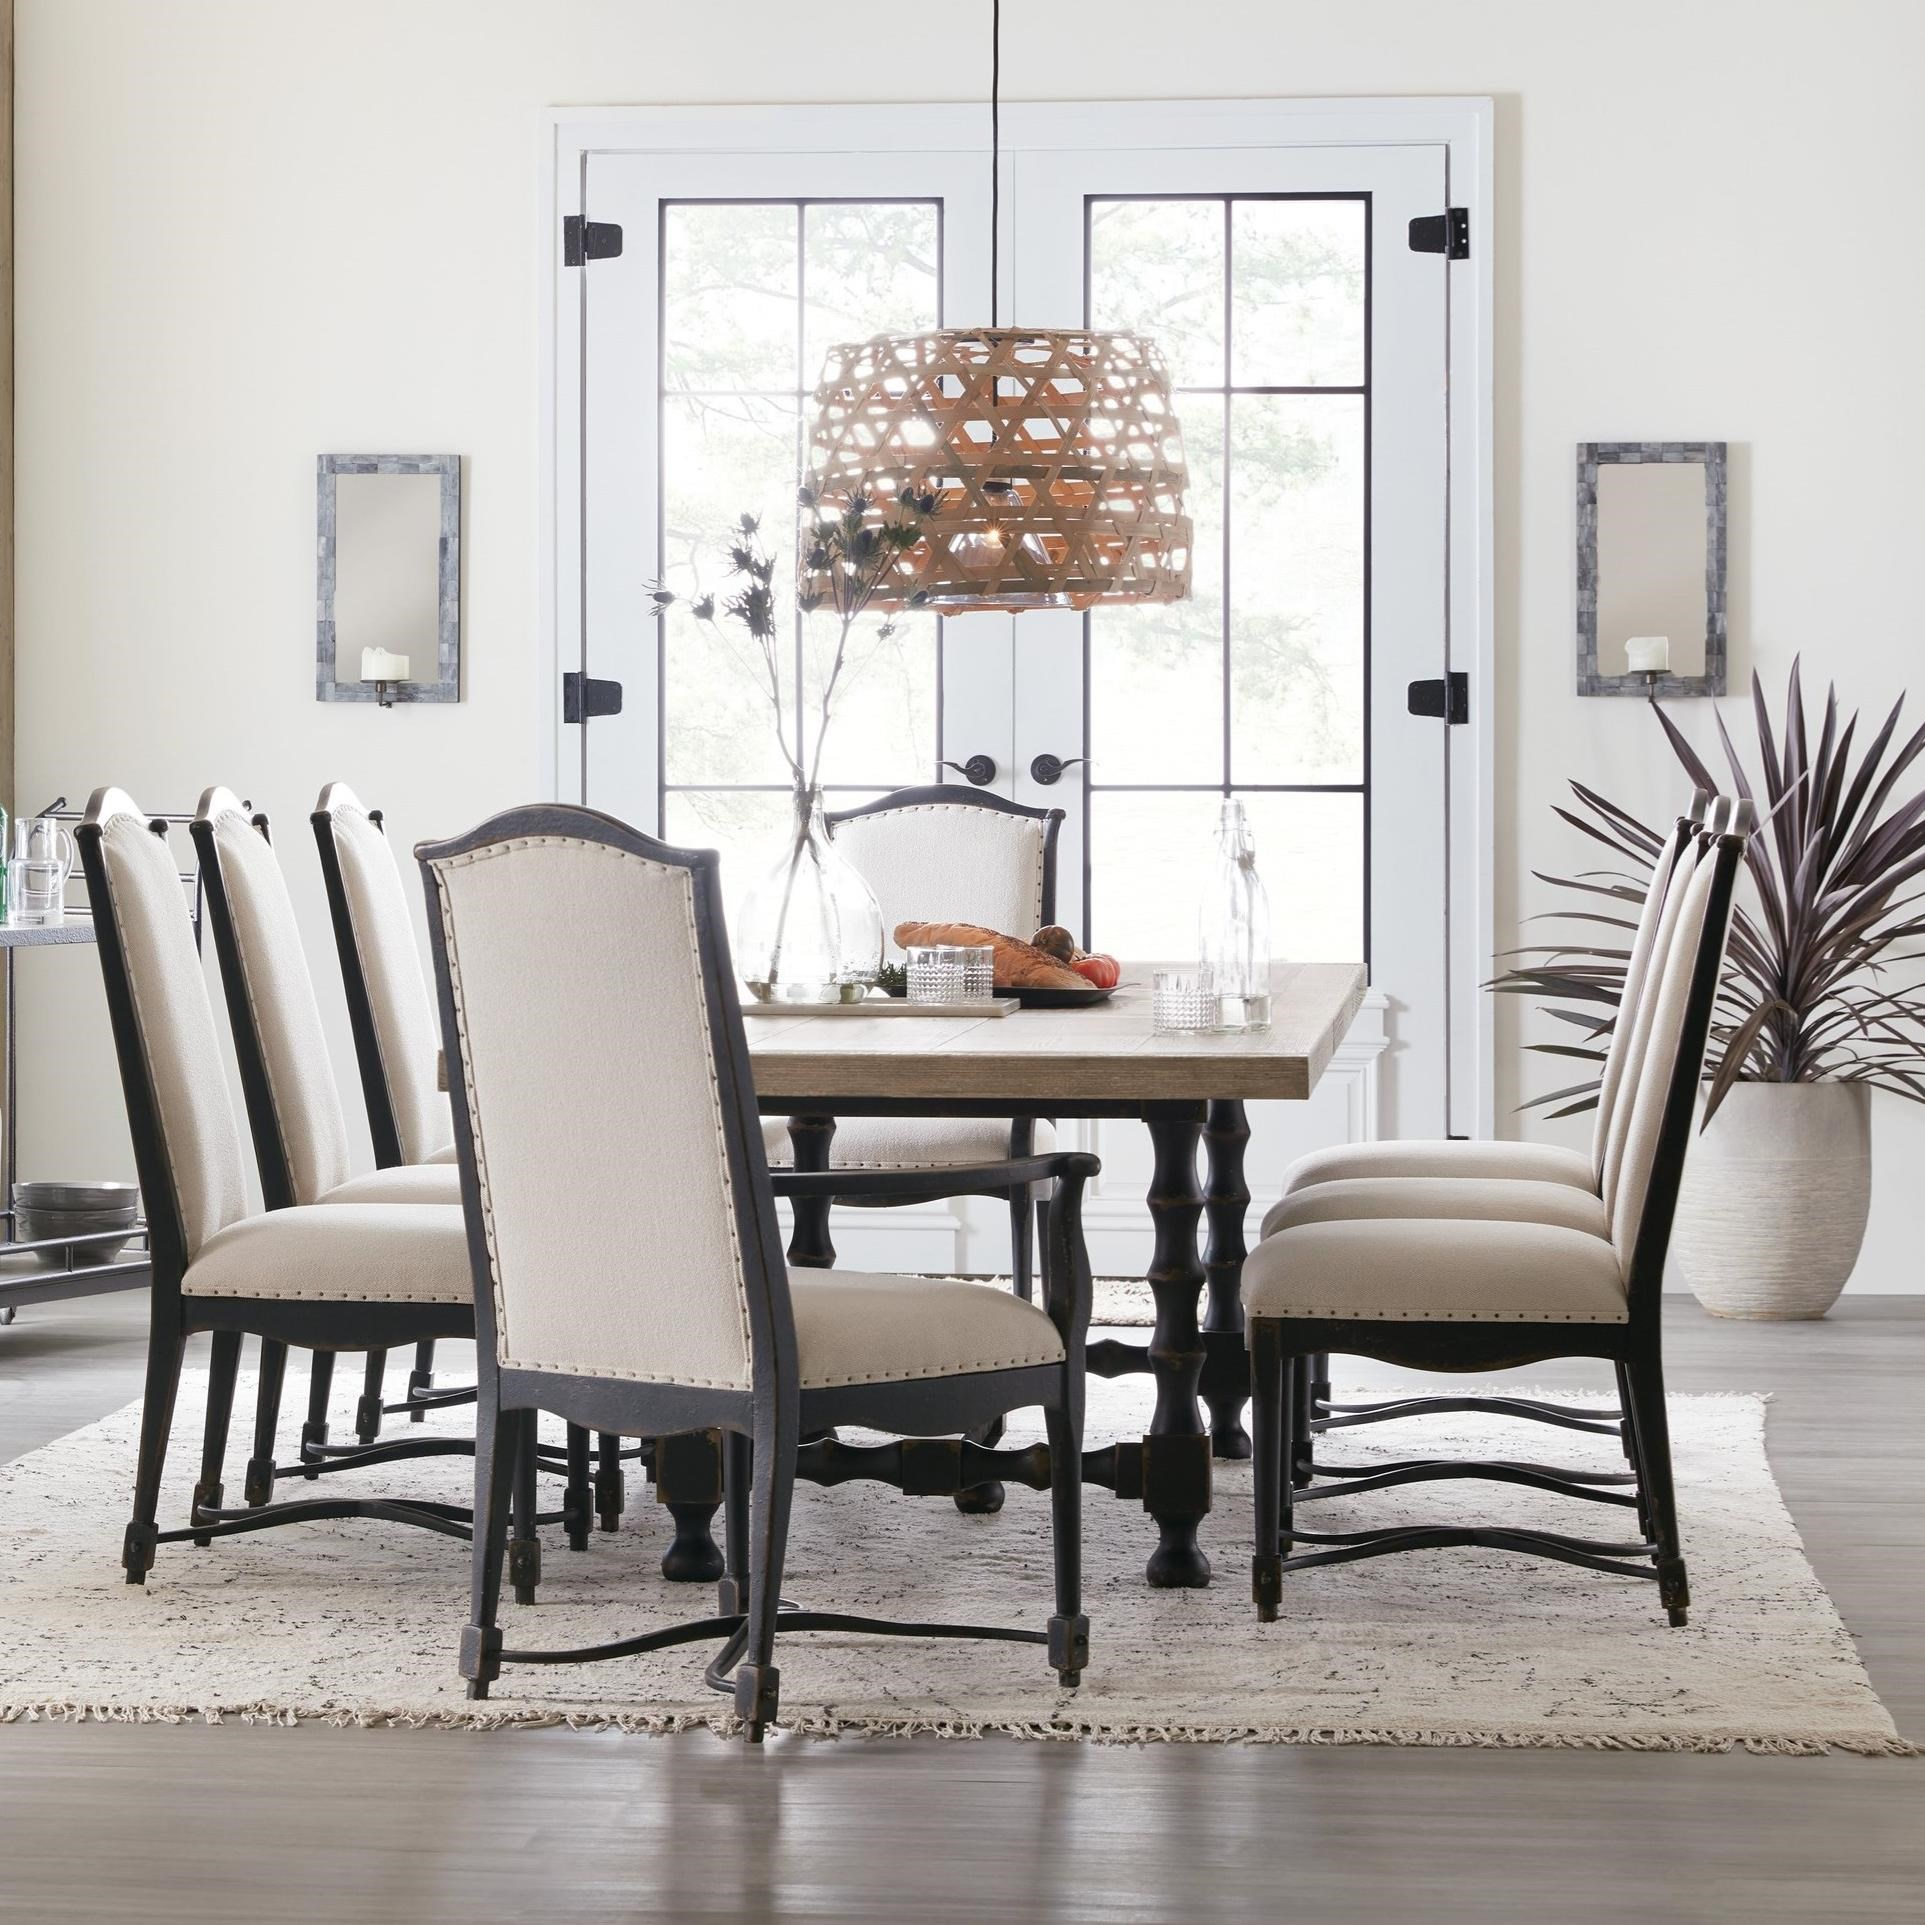 Ciao Bella 9-Piece Table and Chair Set by Hooker Furniture at Miller Waldrop Furniture and Decor